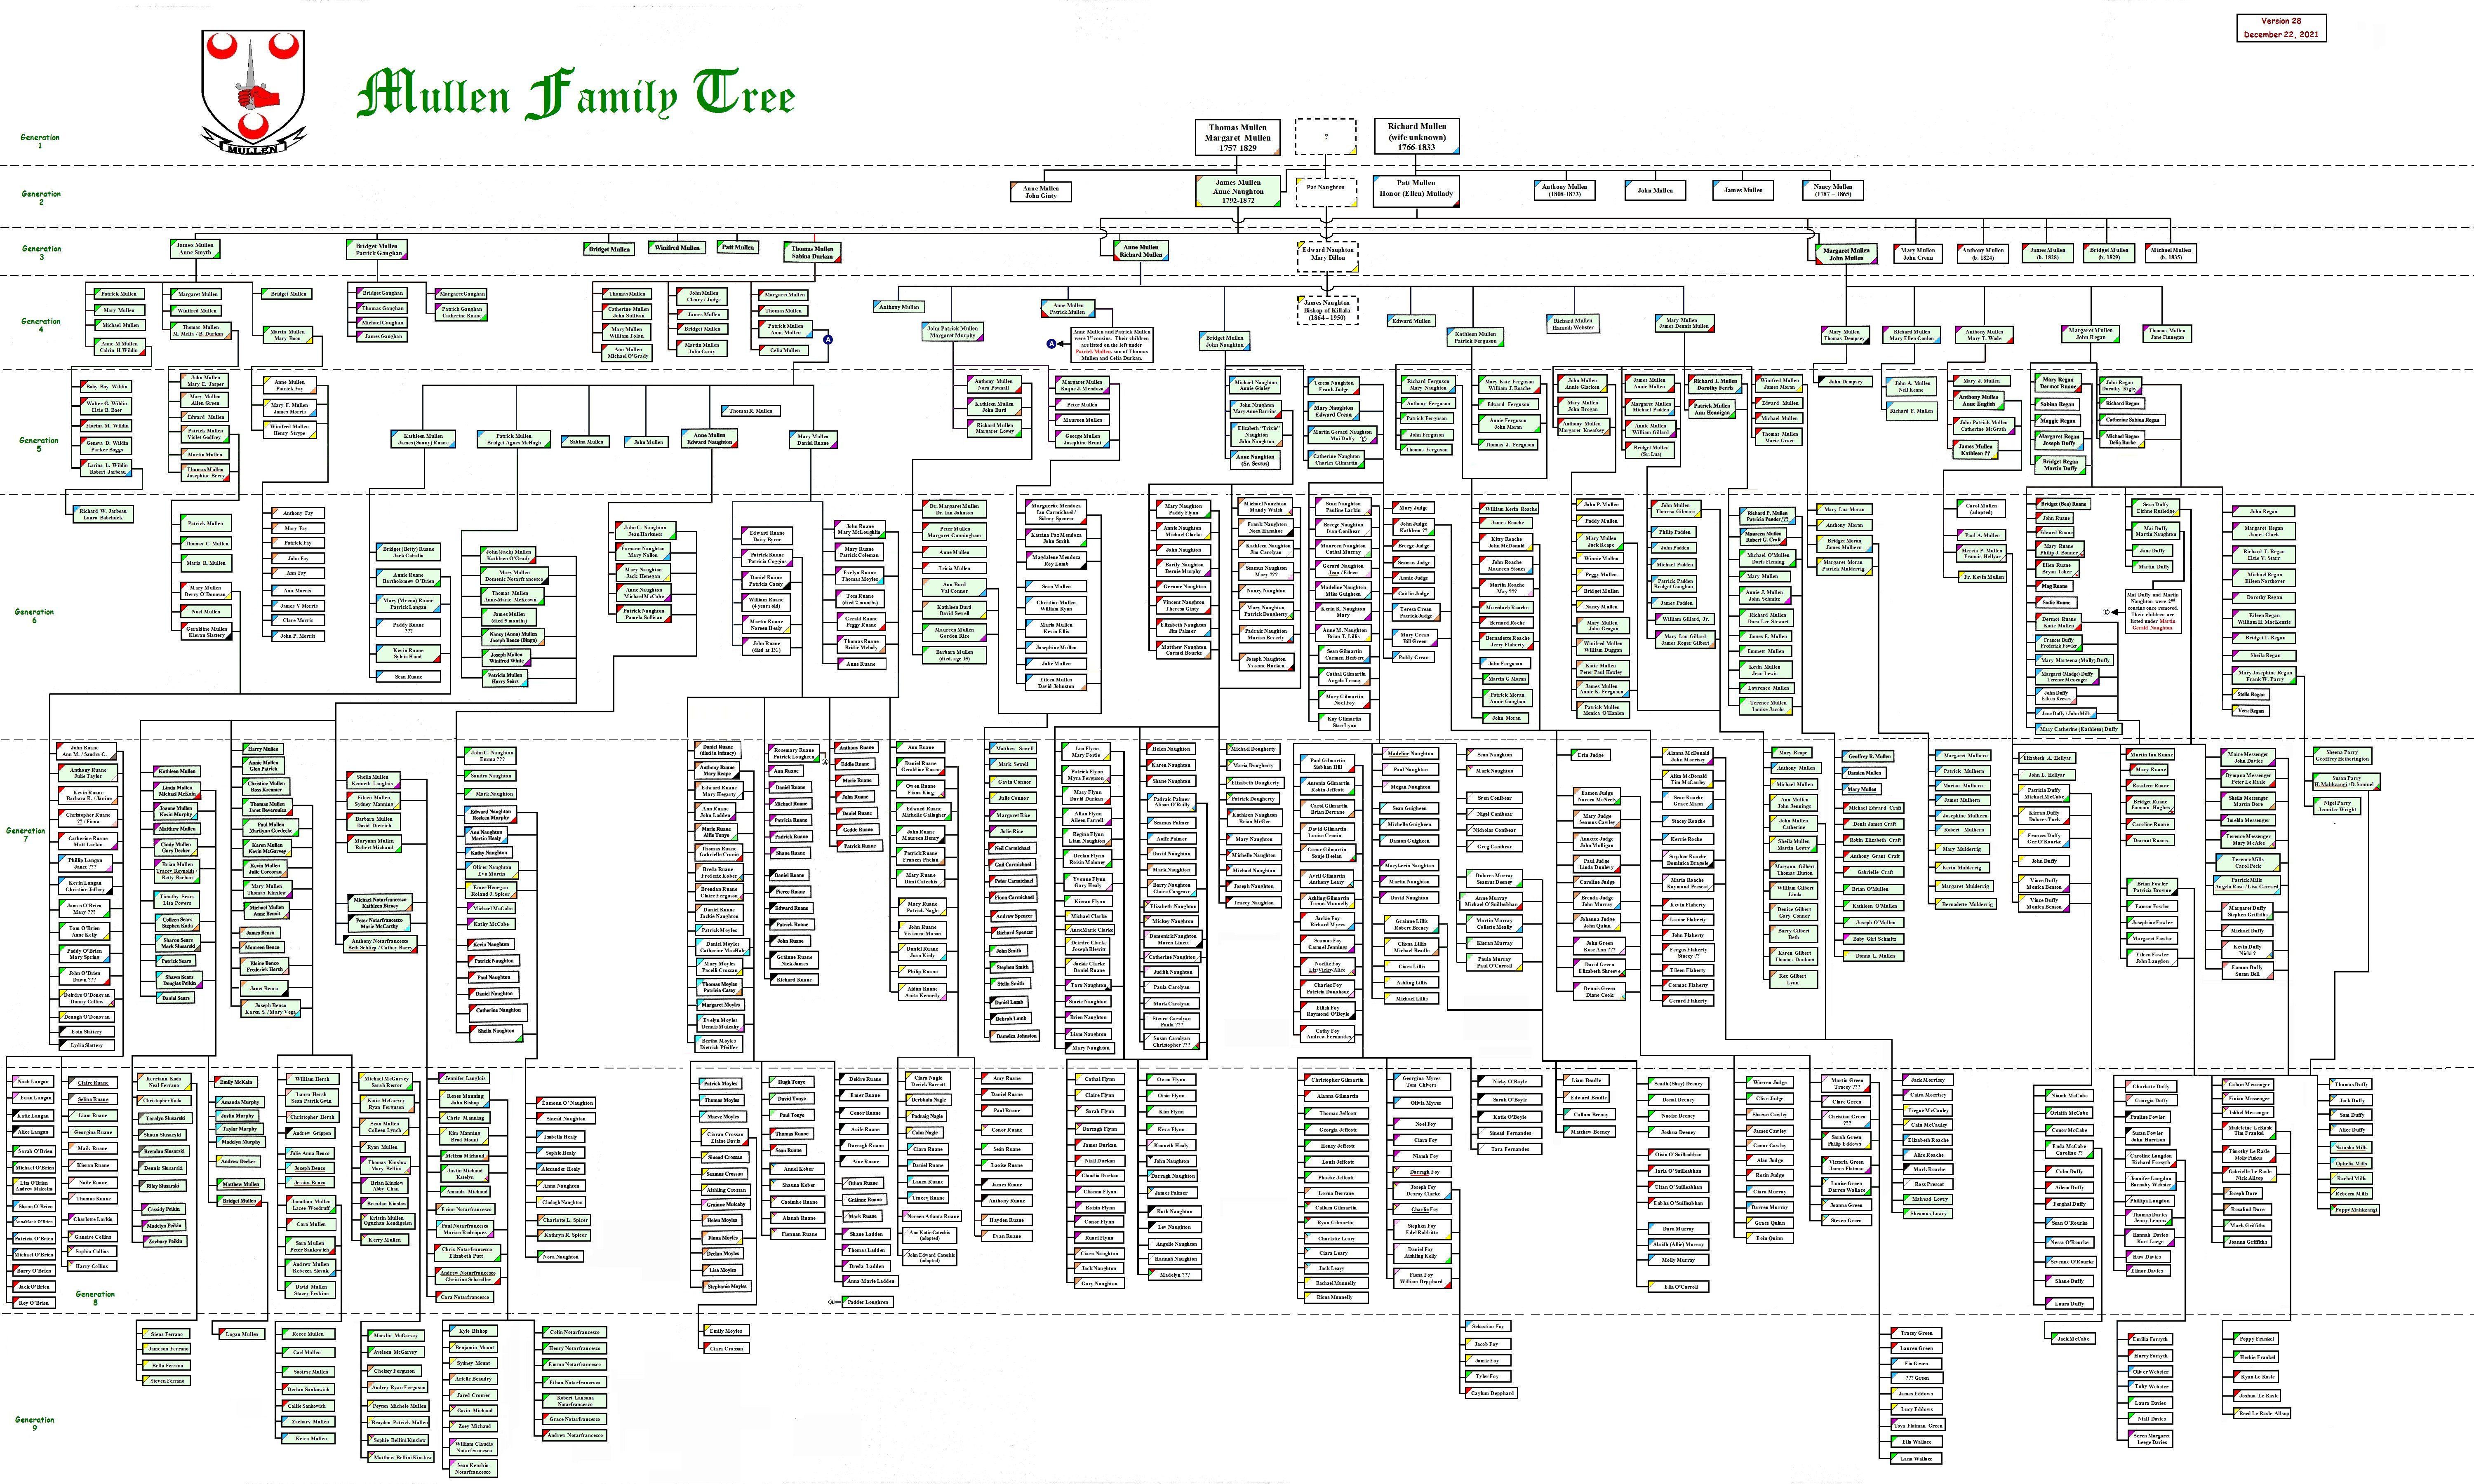 Family Tree Template With Cousins Aunts And Uncles The mullen family ...